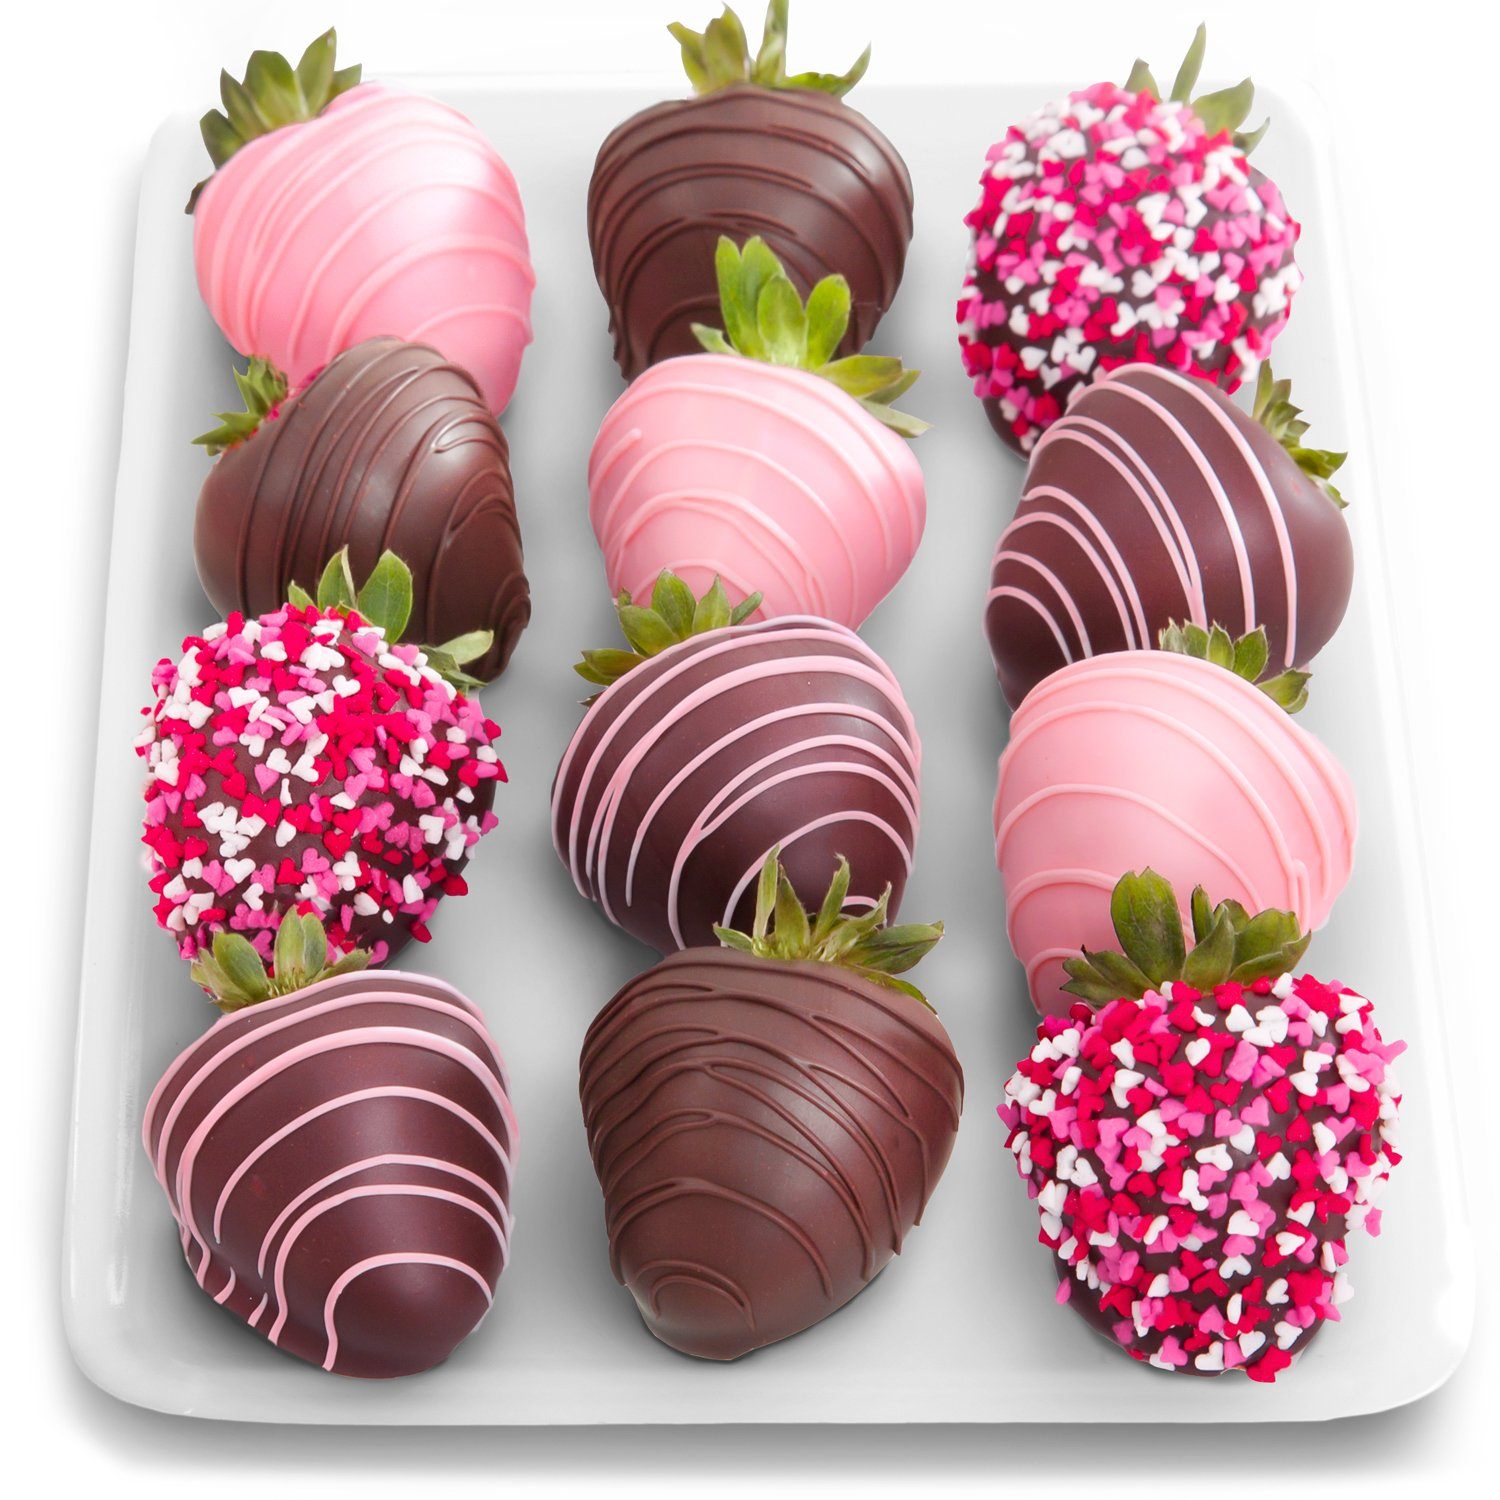 Golden State Fruit 12 Love Berries Valentine's Day Chocolate Covered Strawberries